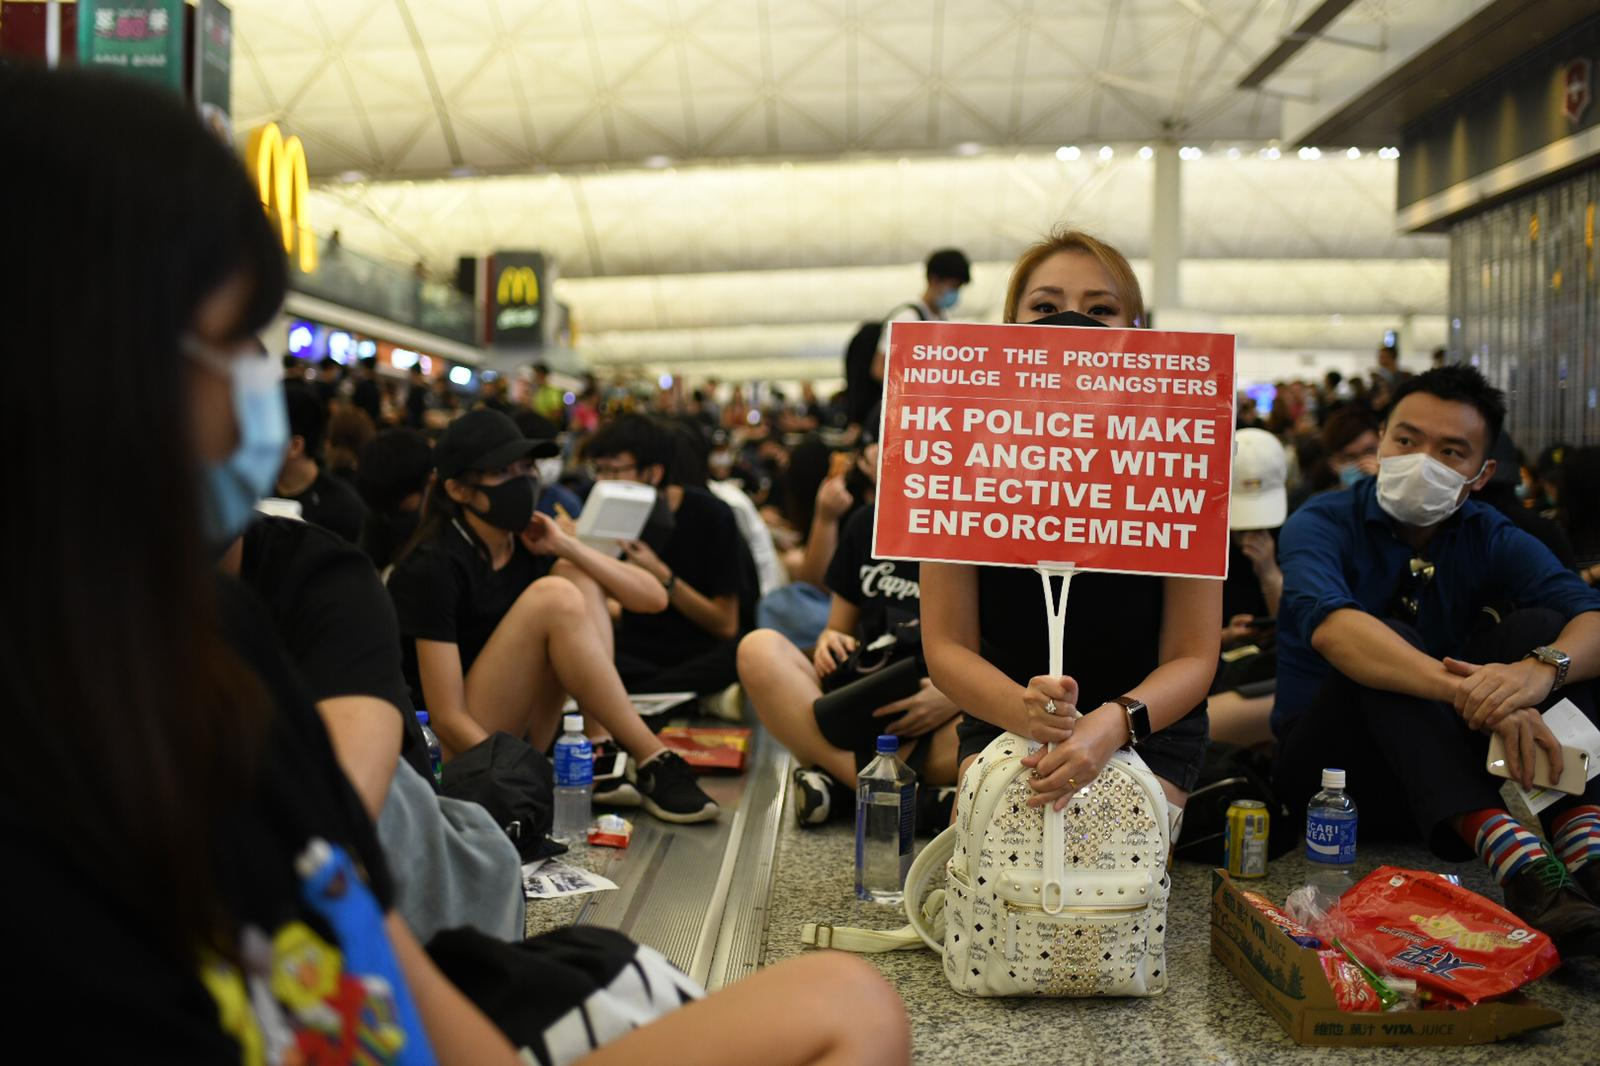 Demonstrators hold protest signs in the arrivals hall of Hong Kong airport.